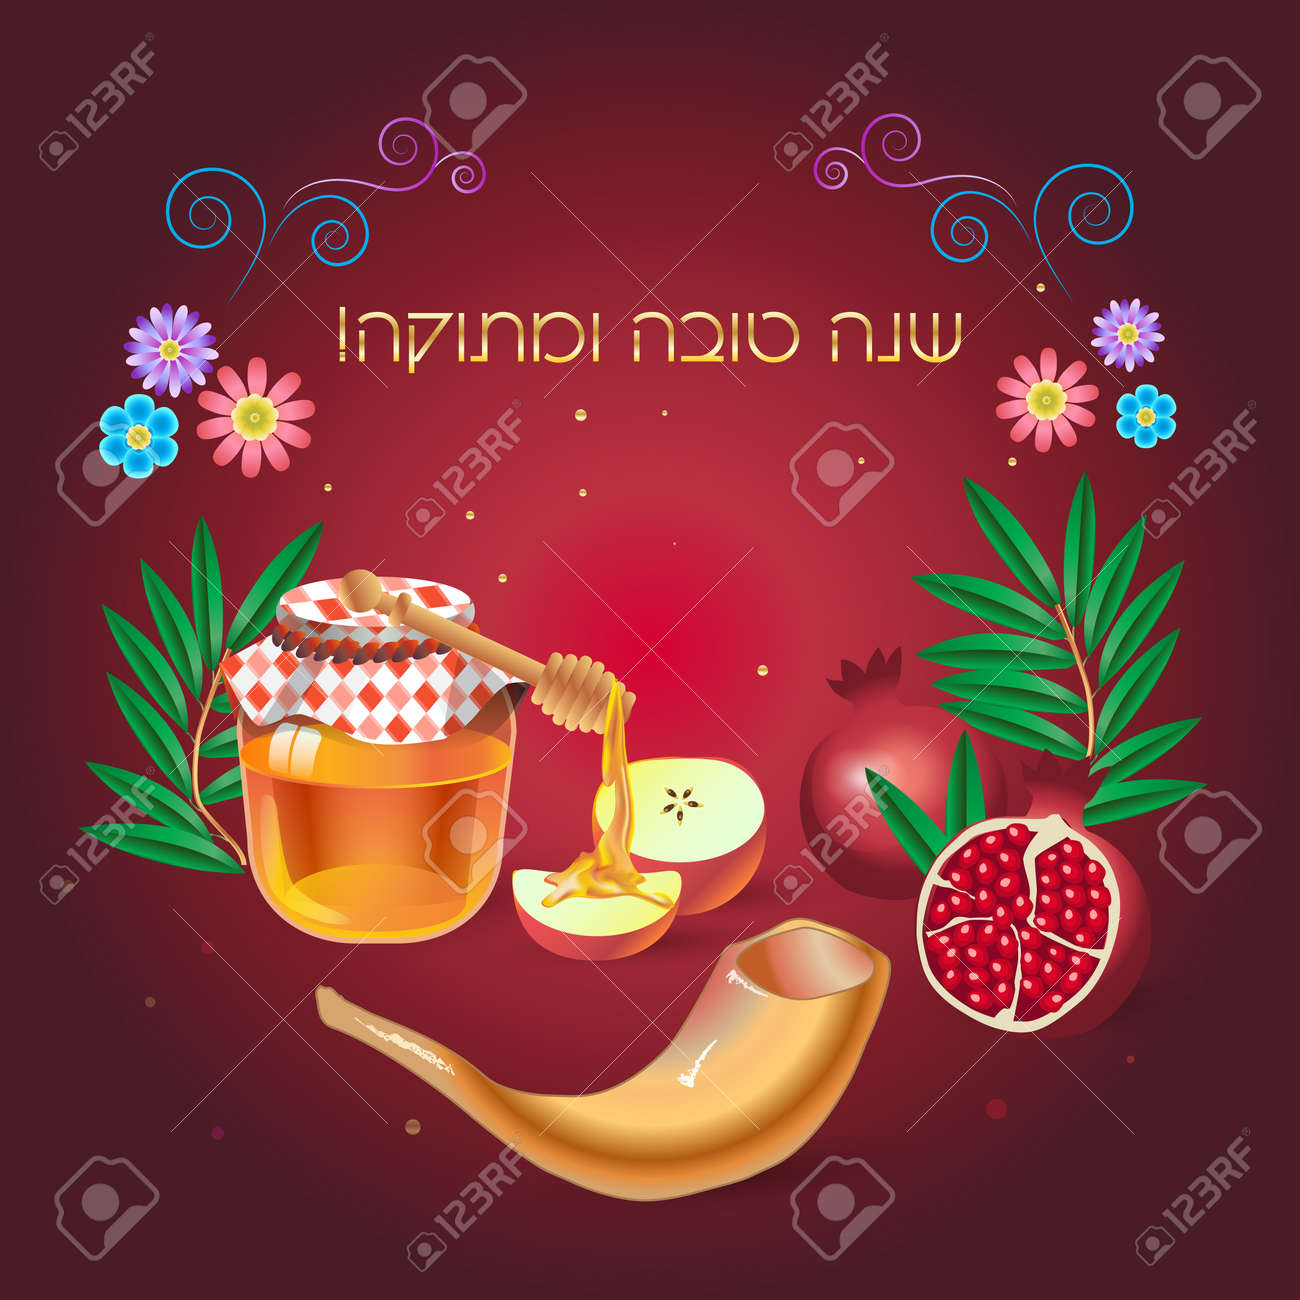 Rosh hashanah card jewish new year shana tova hebrew greeting rosh hashanah card jewish new year shana tova hebrew greeting text vector m4hsunfo